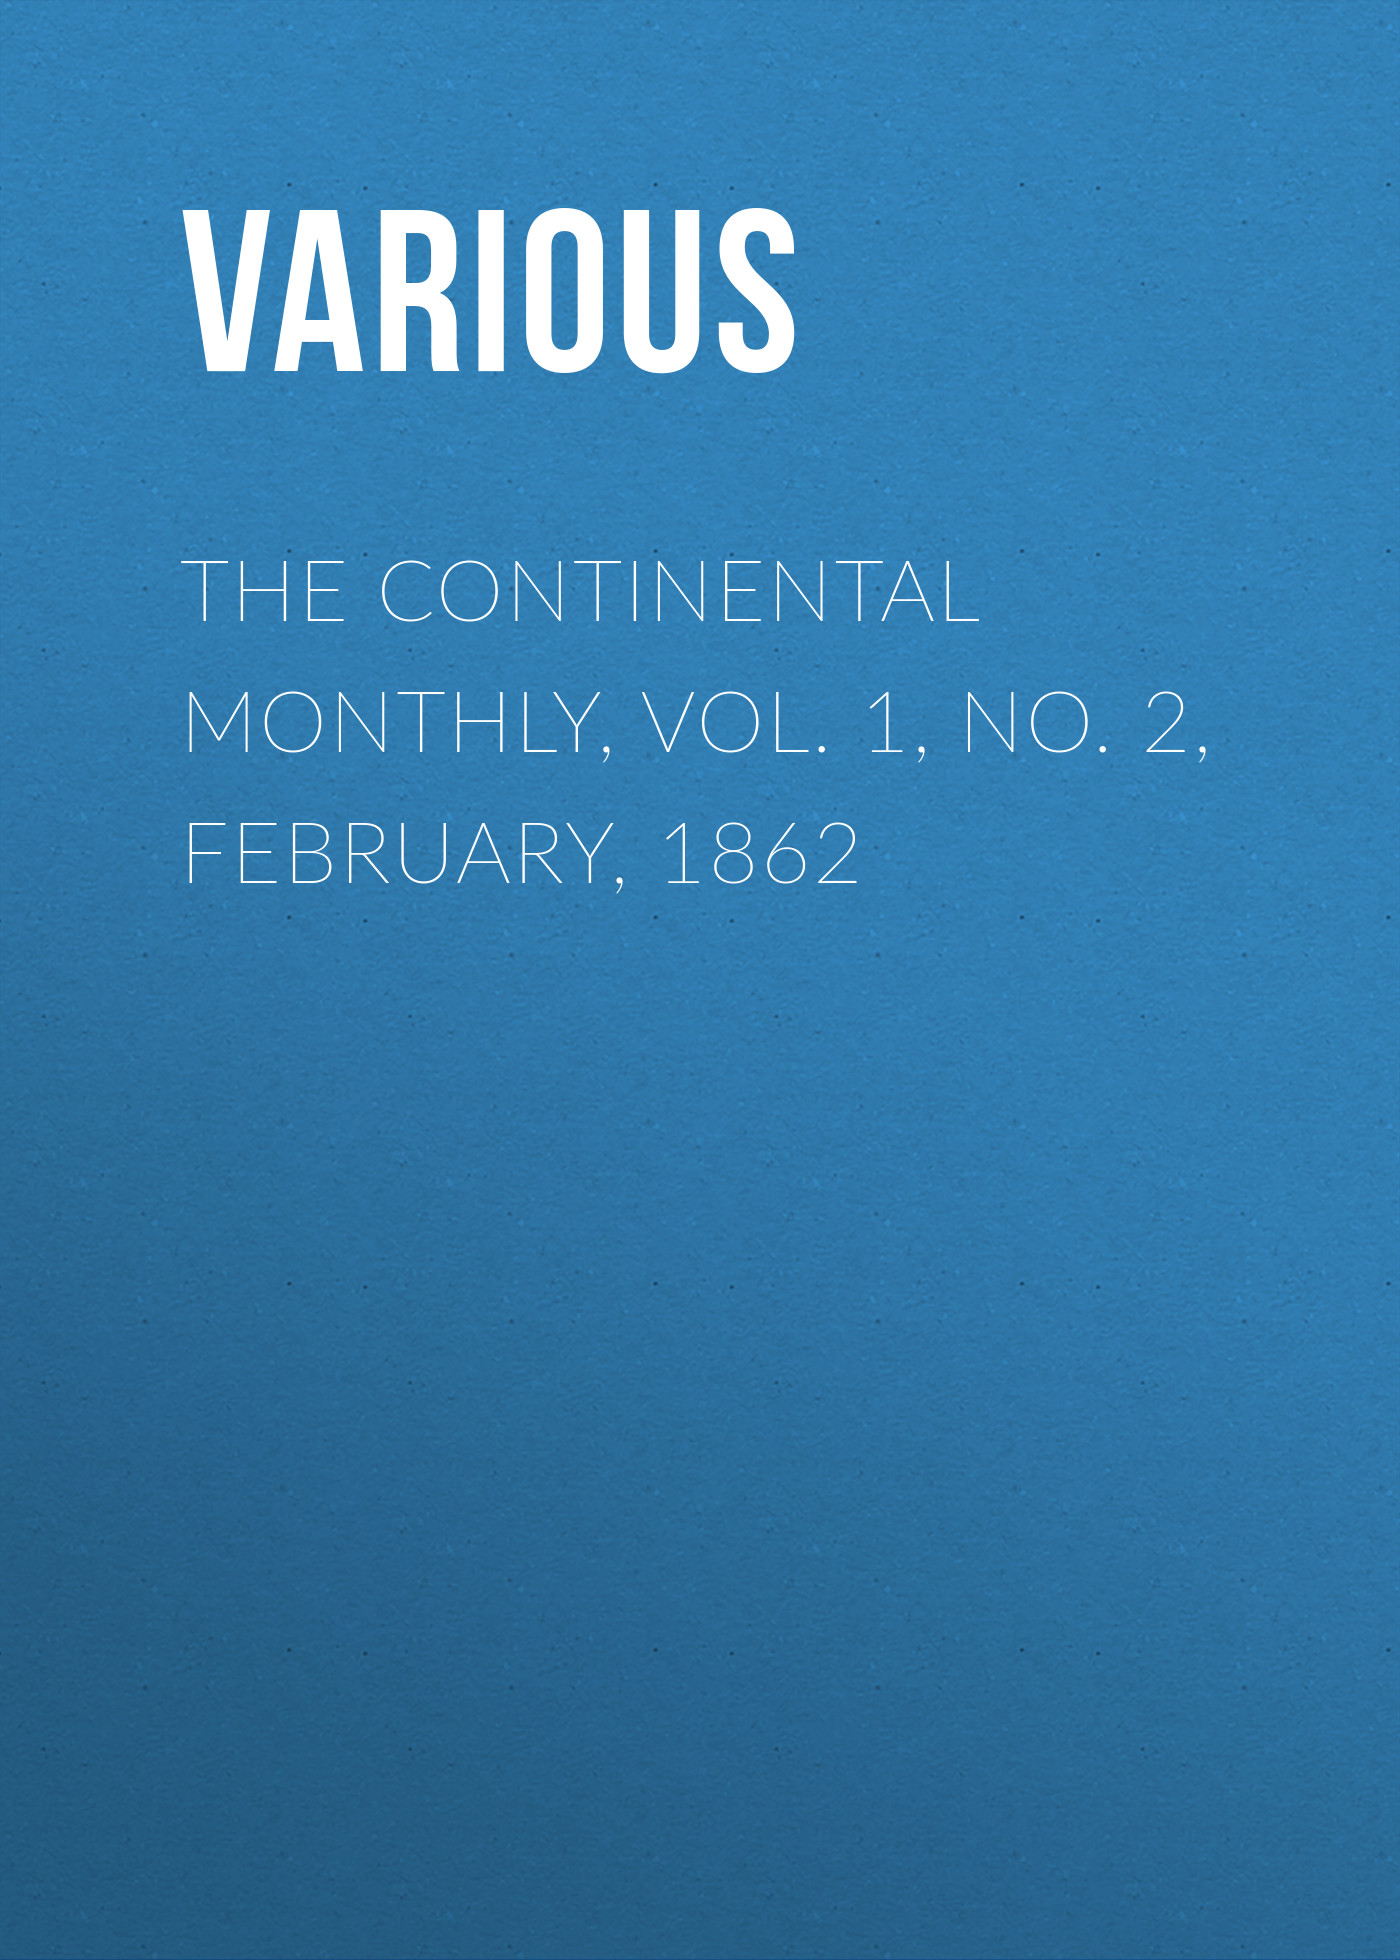 Various The Continental Monthly, Vol. 1, No. 2, February, 1862